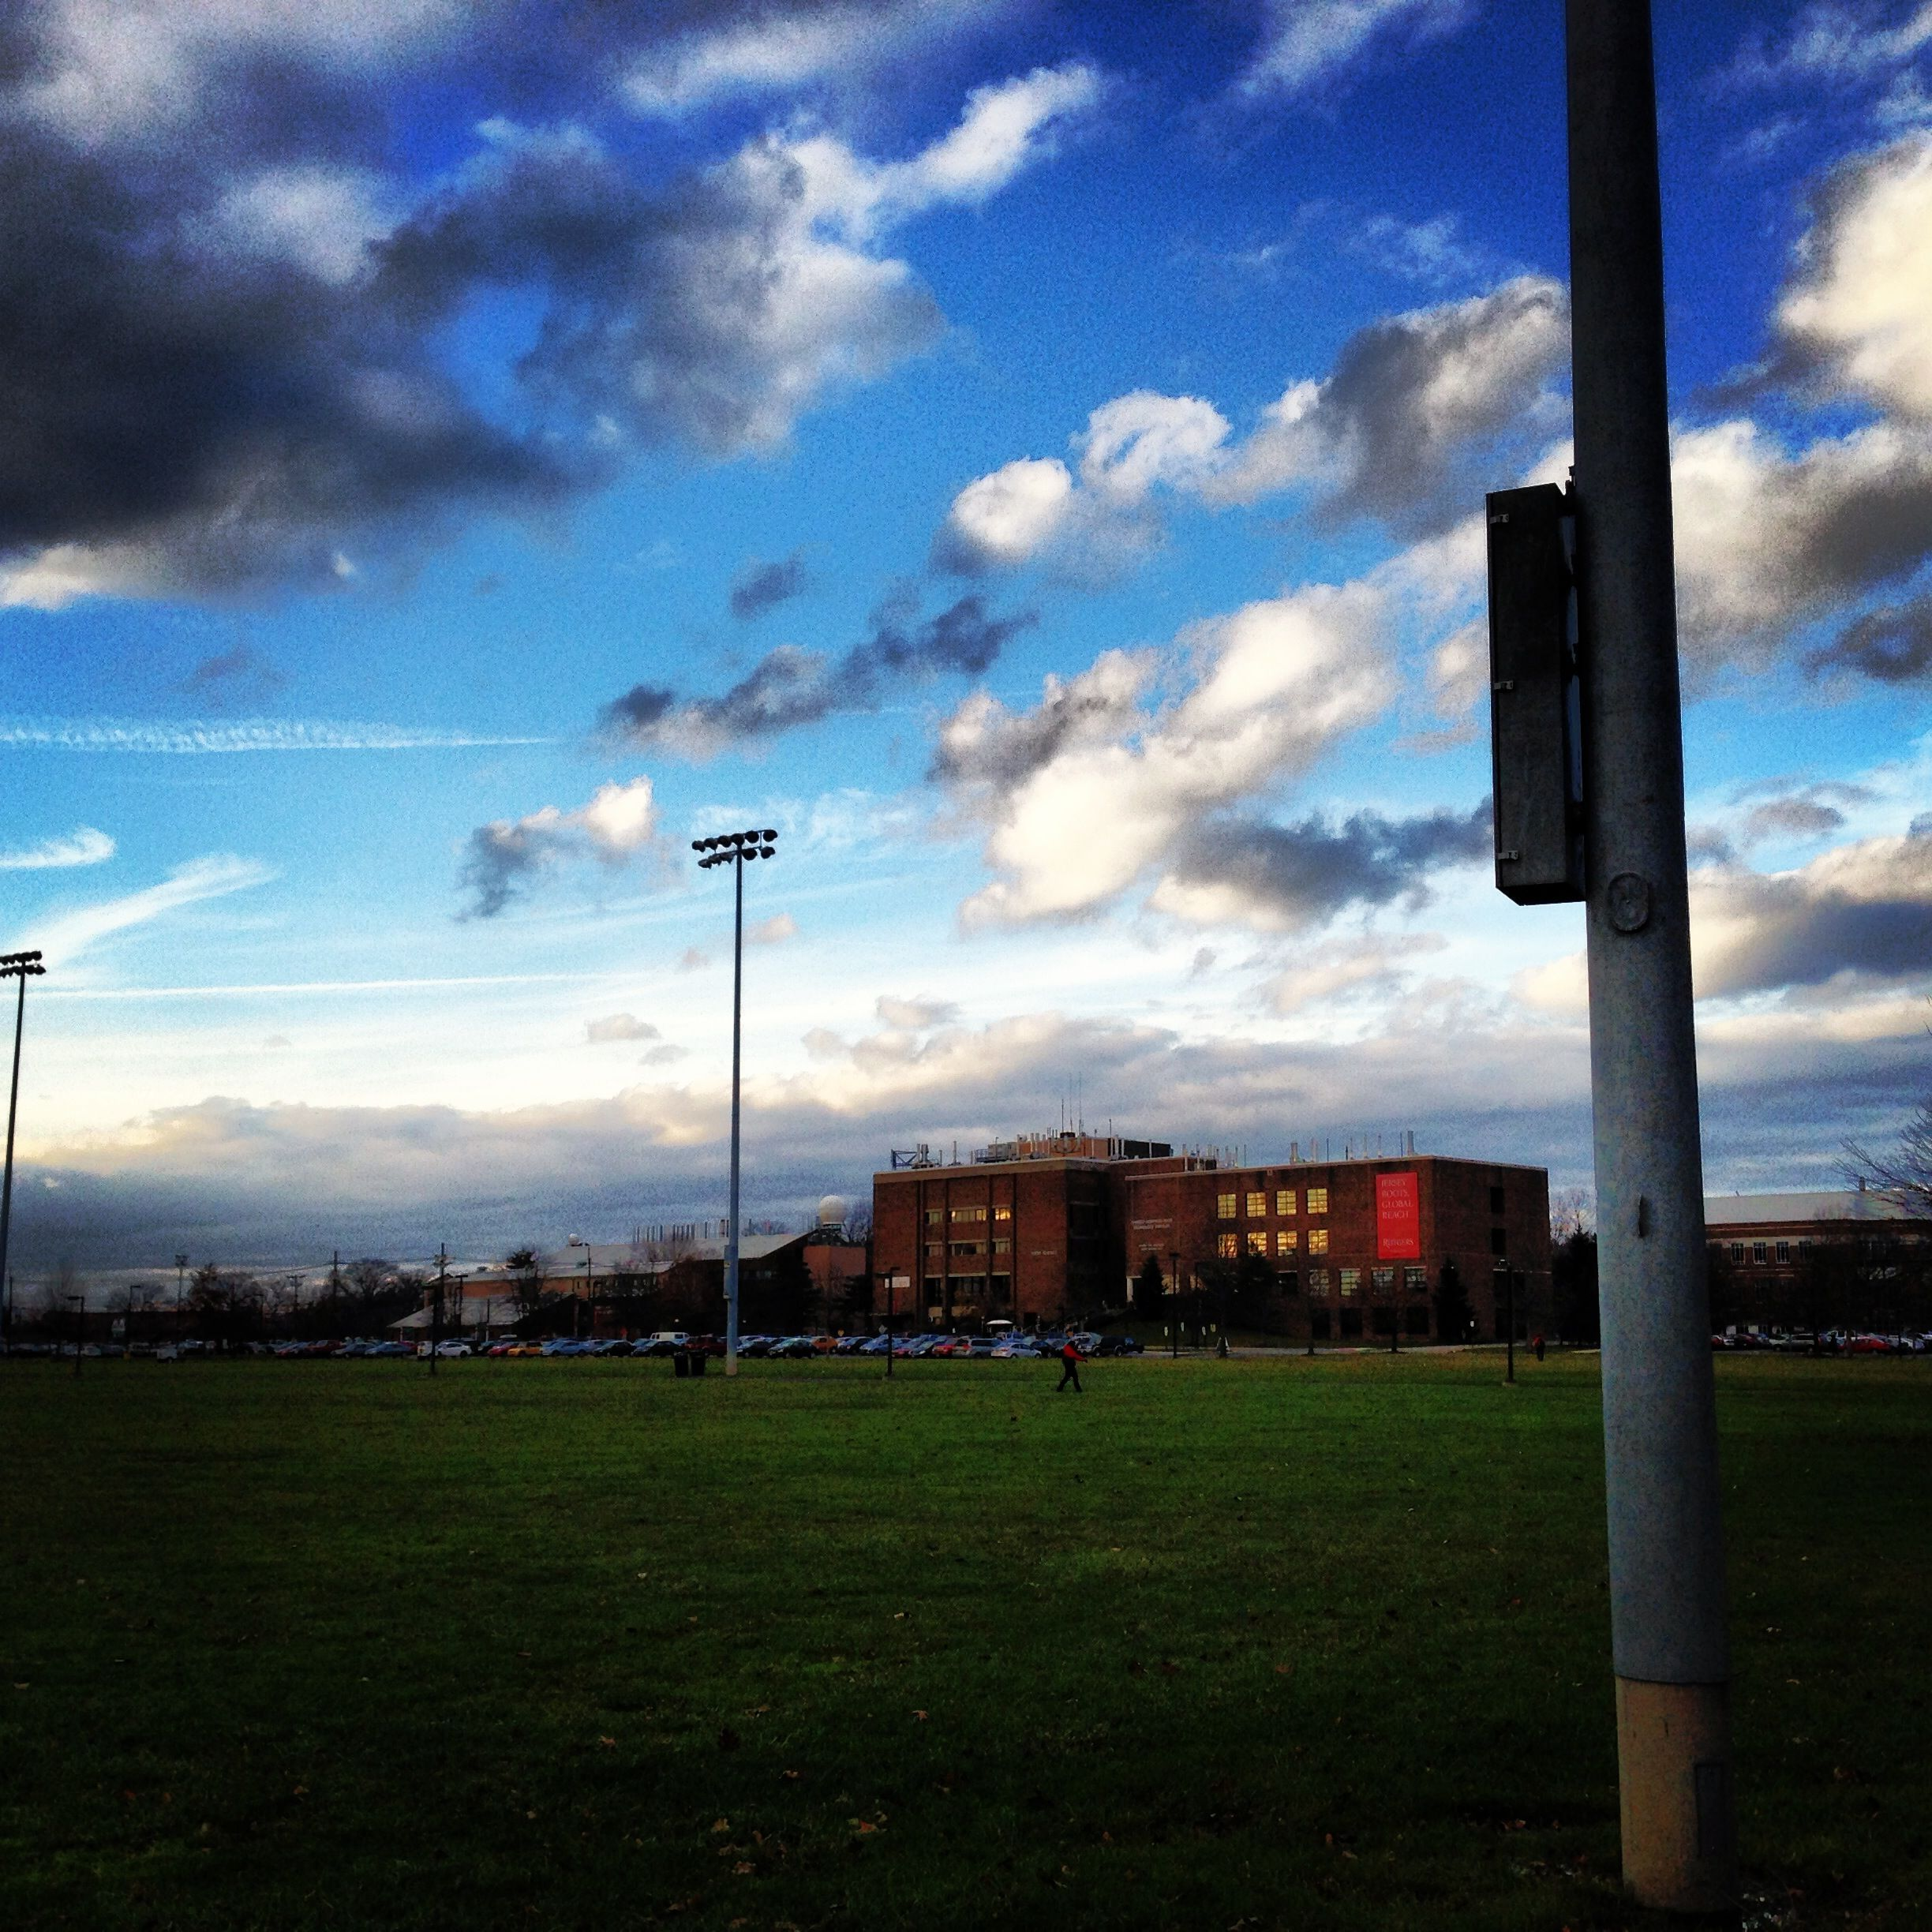 Blue Sky on Campus (Rutgers University)